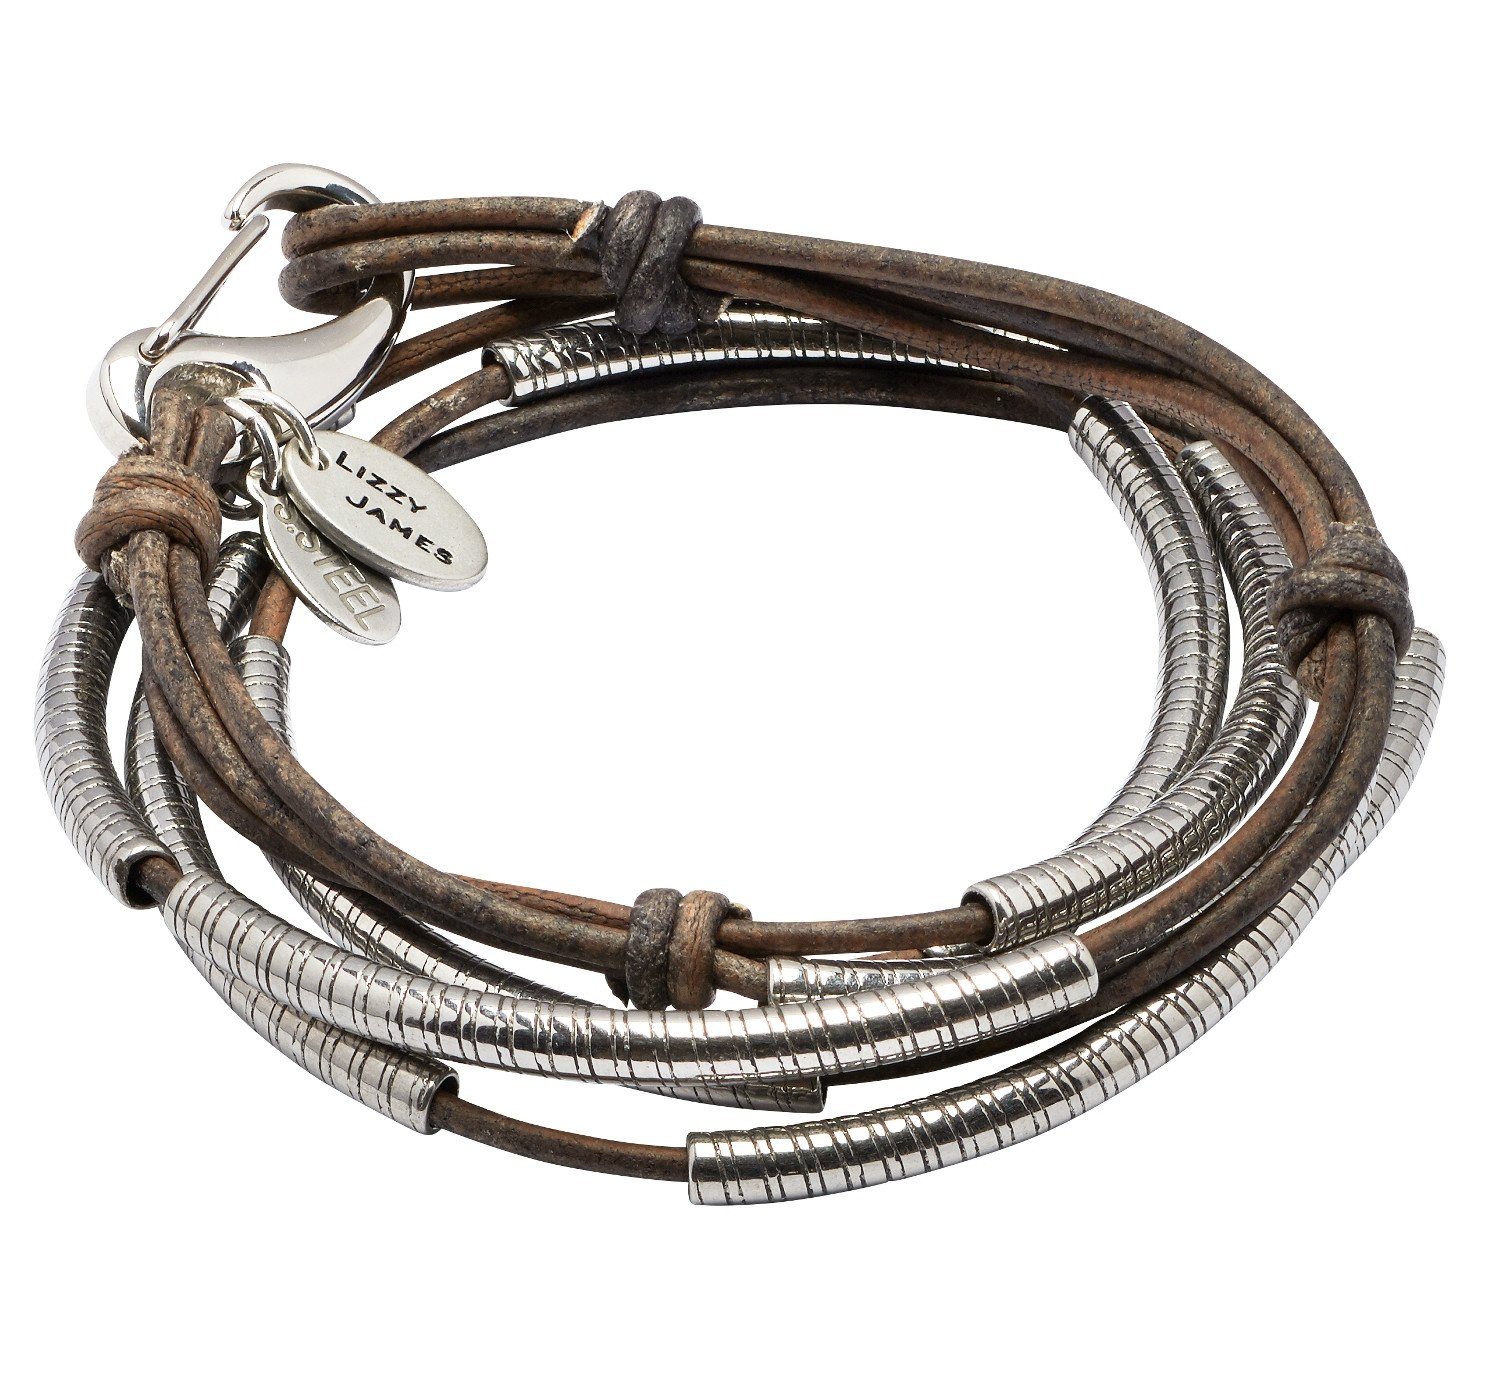 Mini Rebar 3 Strand with Stainless Steel Clasp Medium Bracelet With Natural Brown Grey Leather by Lizzy James